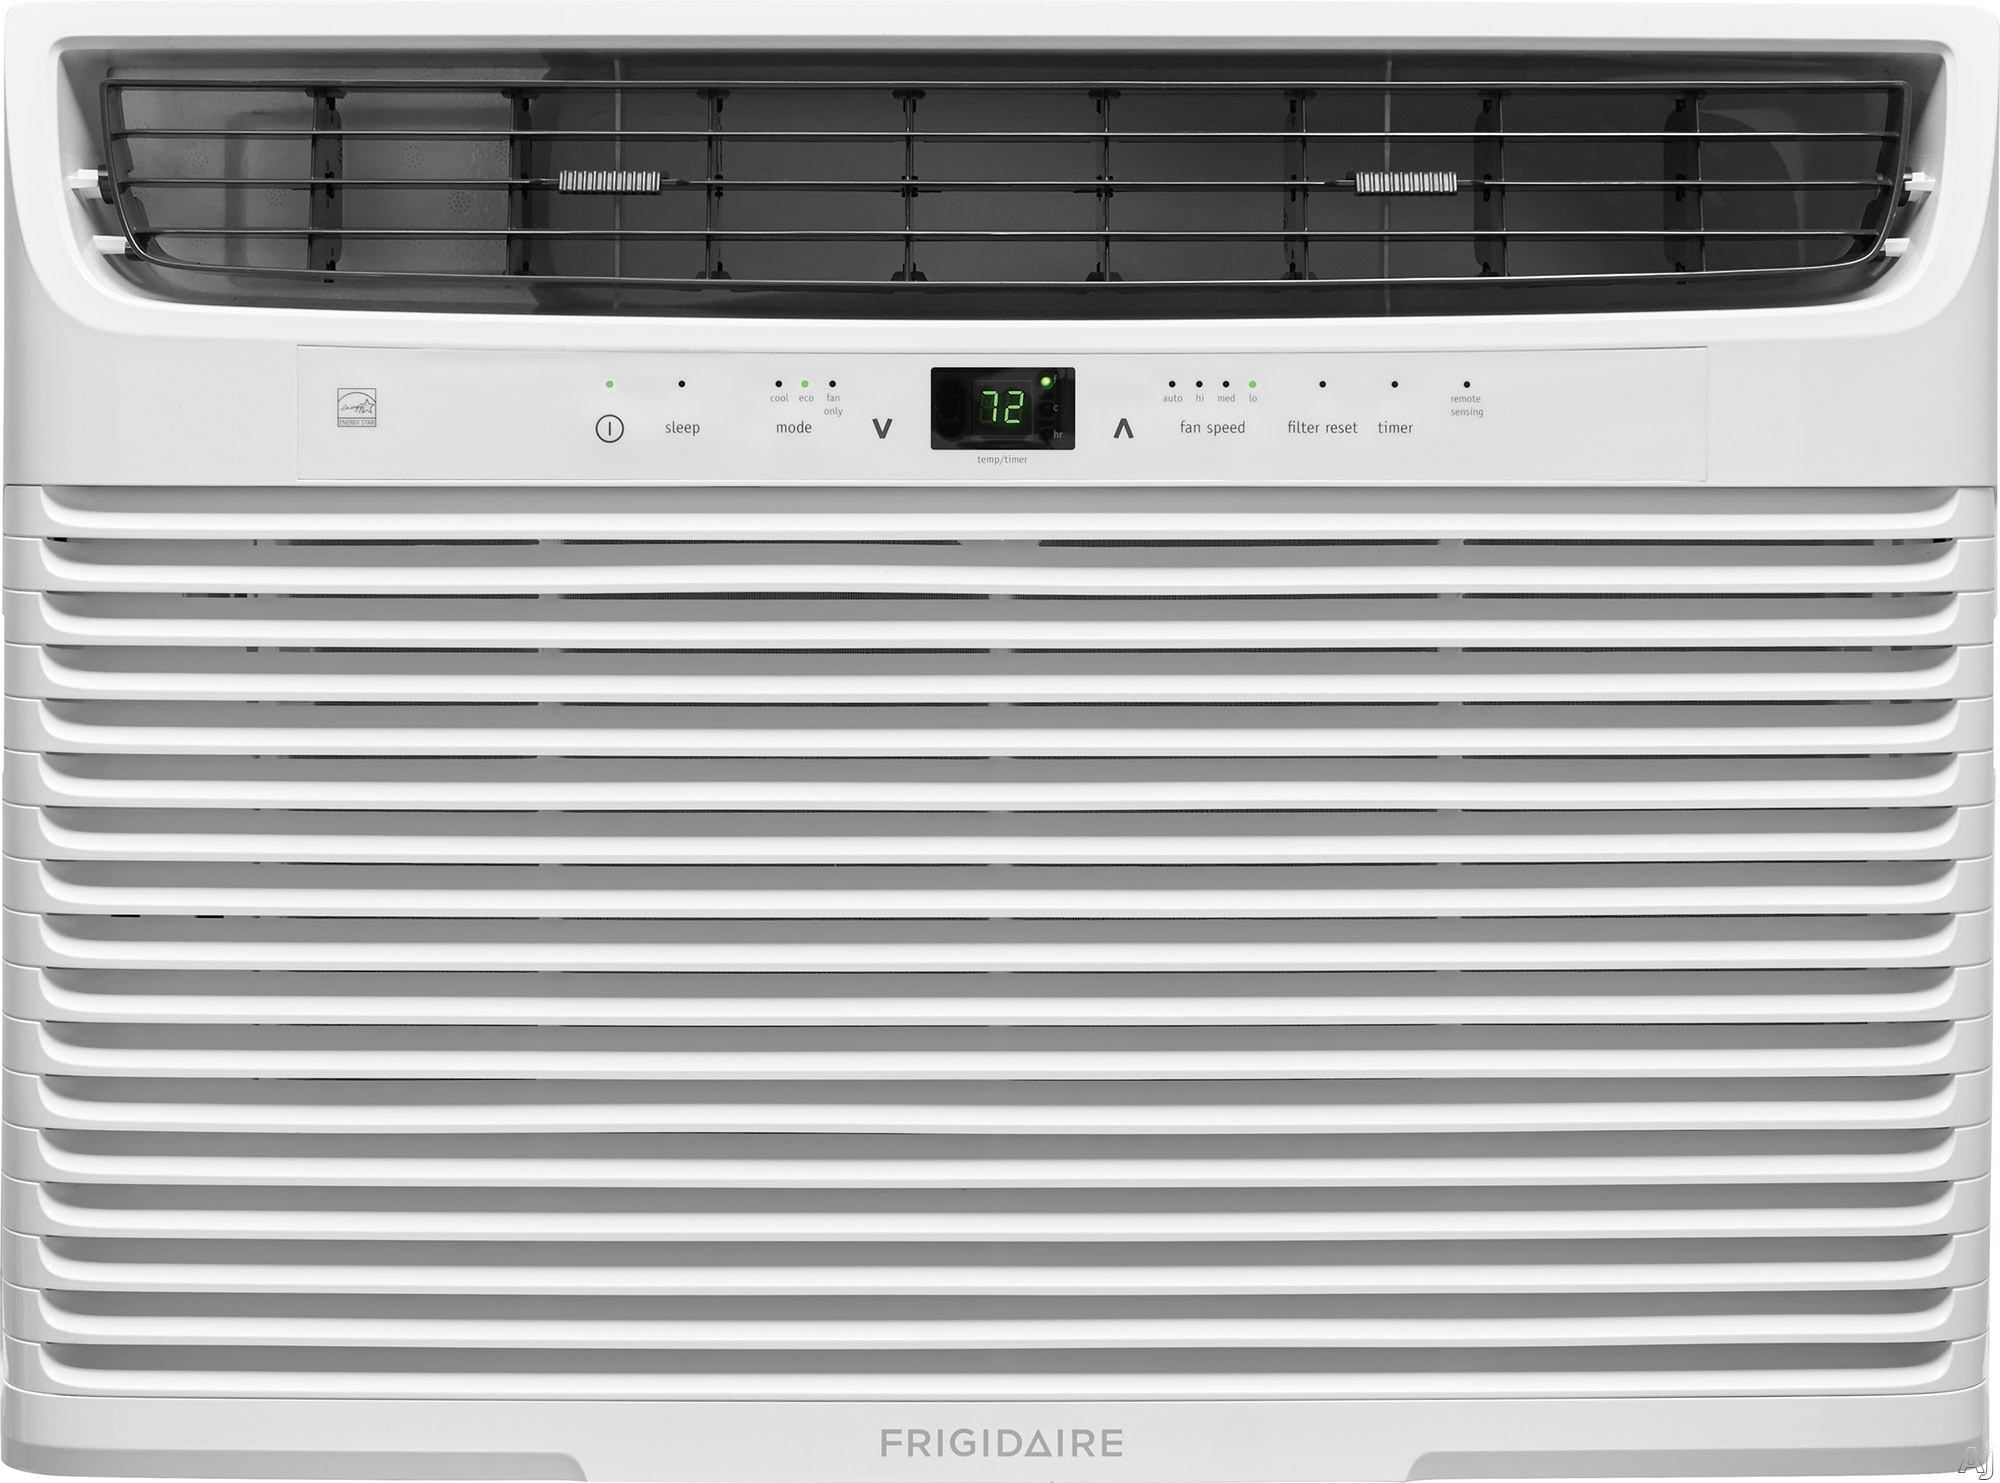 Frigidaire FFRE1833U2 18,000 BTU Window/Through The Wall Room Air Conditioner with Effortless™ Remote Temperature Control, Effortless™ Clean Filter, SpaceWise® Adjustable Side Panels, S